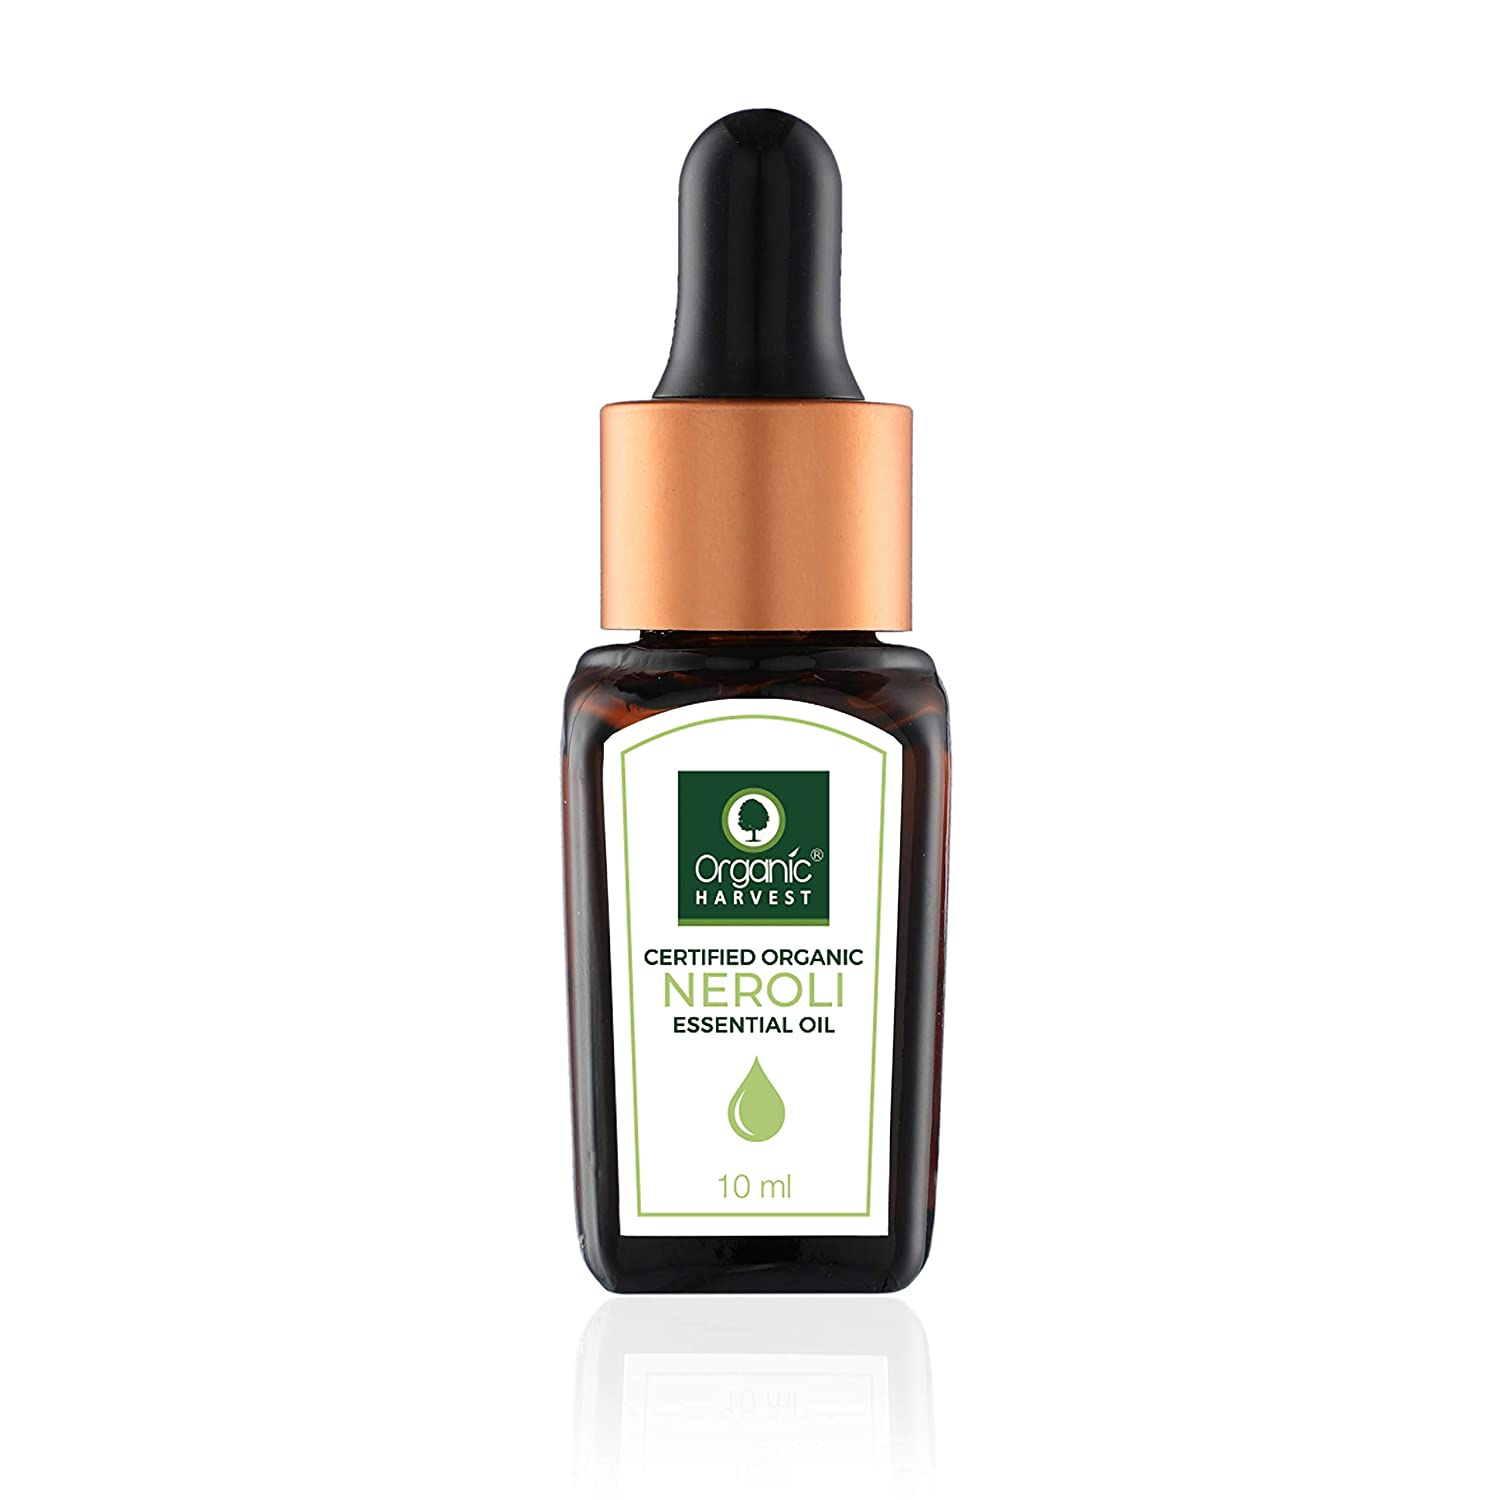 Organic Harvest - Neroli Essential Oil – USDA, OneCert, Certified Organic, 100% Pure, Undiluted, Therapeutic Grade, Excellent for Aromatherapy, 1/3 fl. Oz / 10 ml